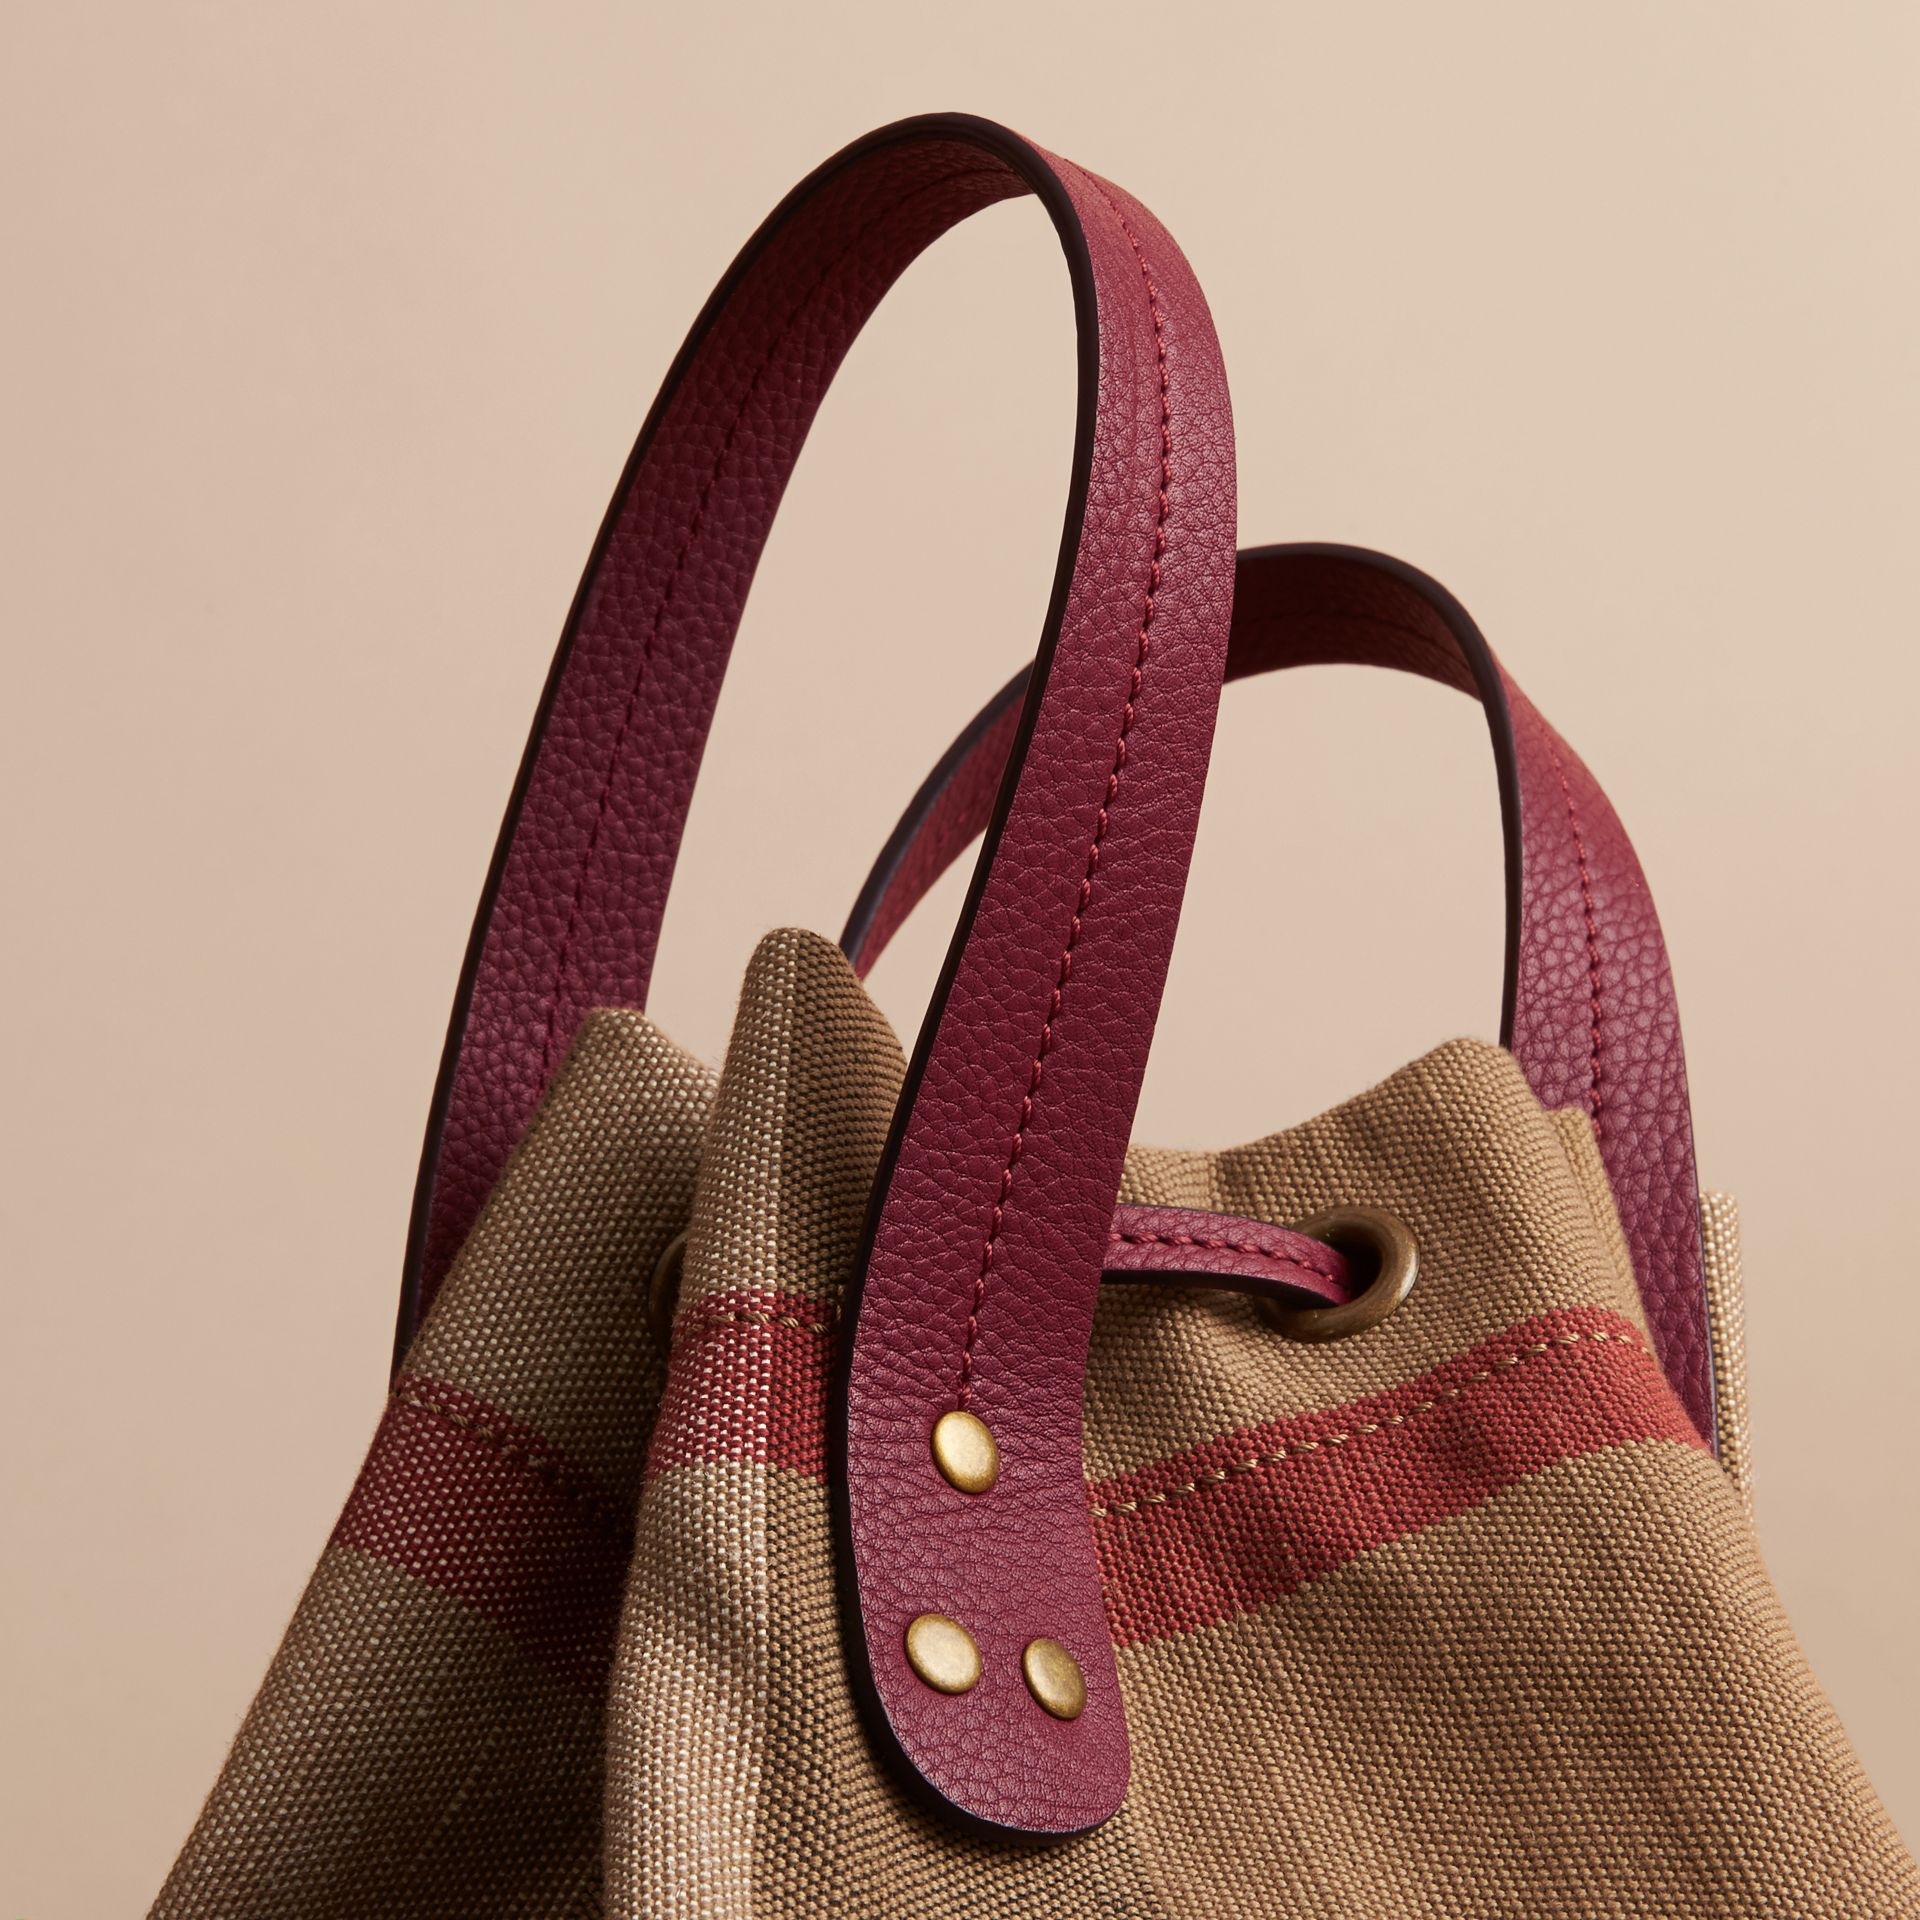 Medium Canvas Check and Leather Bucket Bag in Burgundy Red - Women | Burberry Hong Kong - gallery image 2